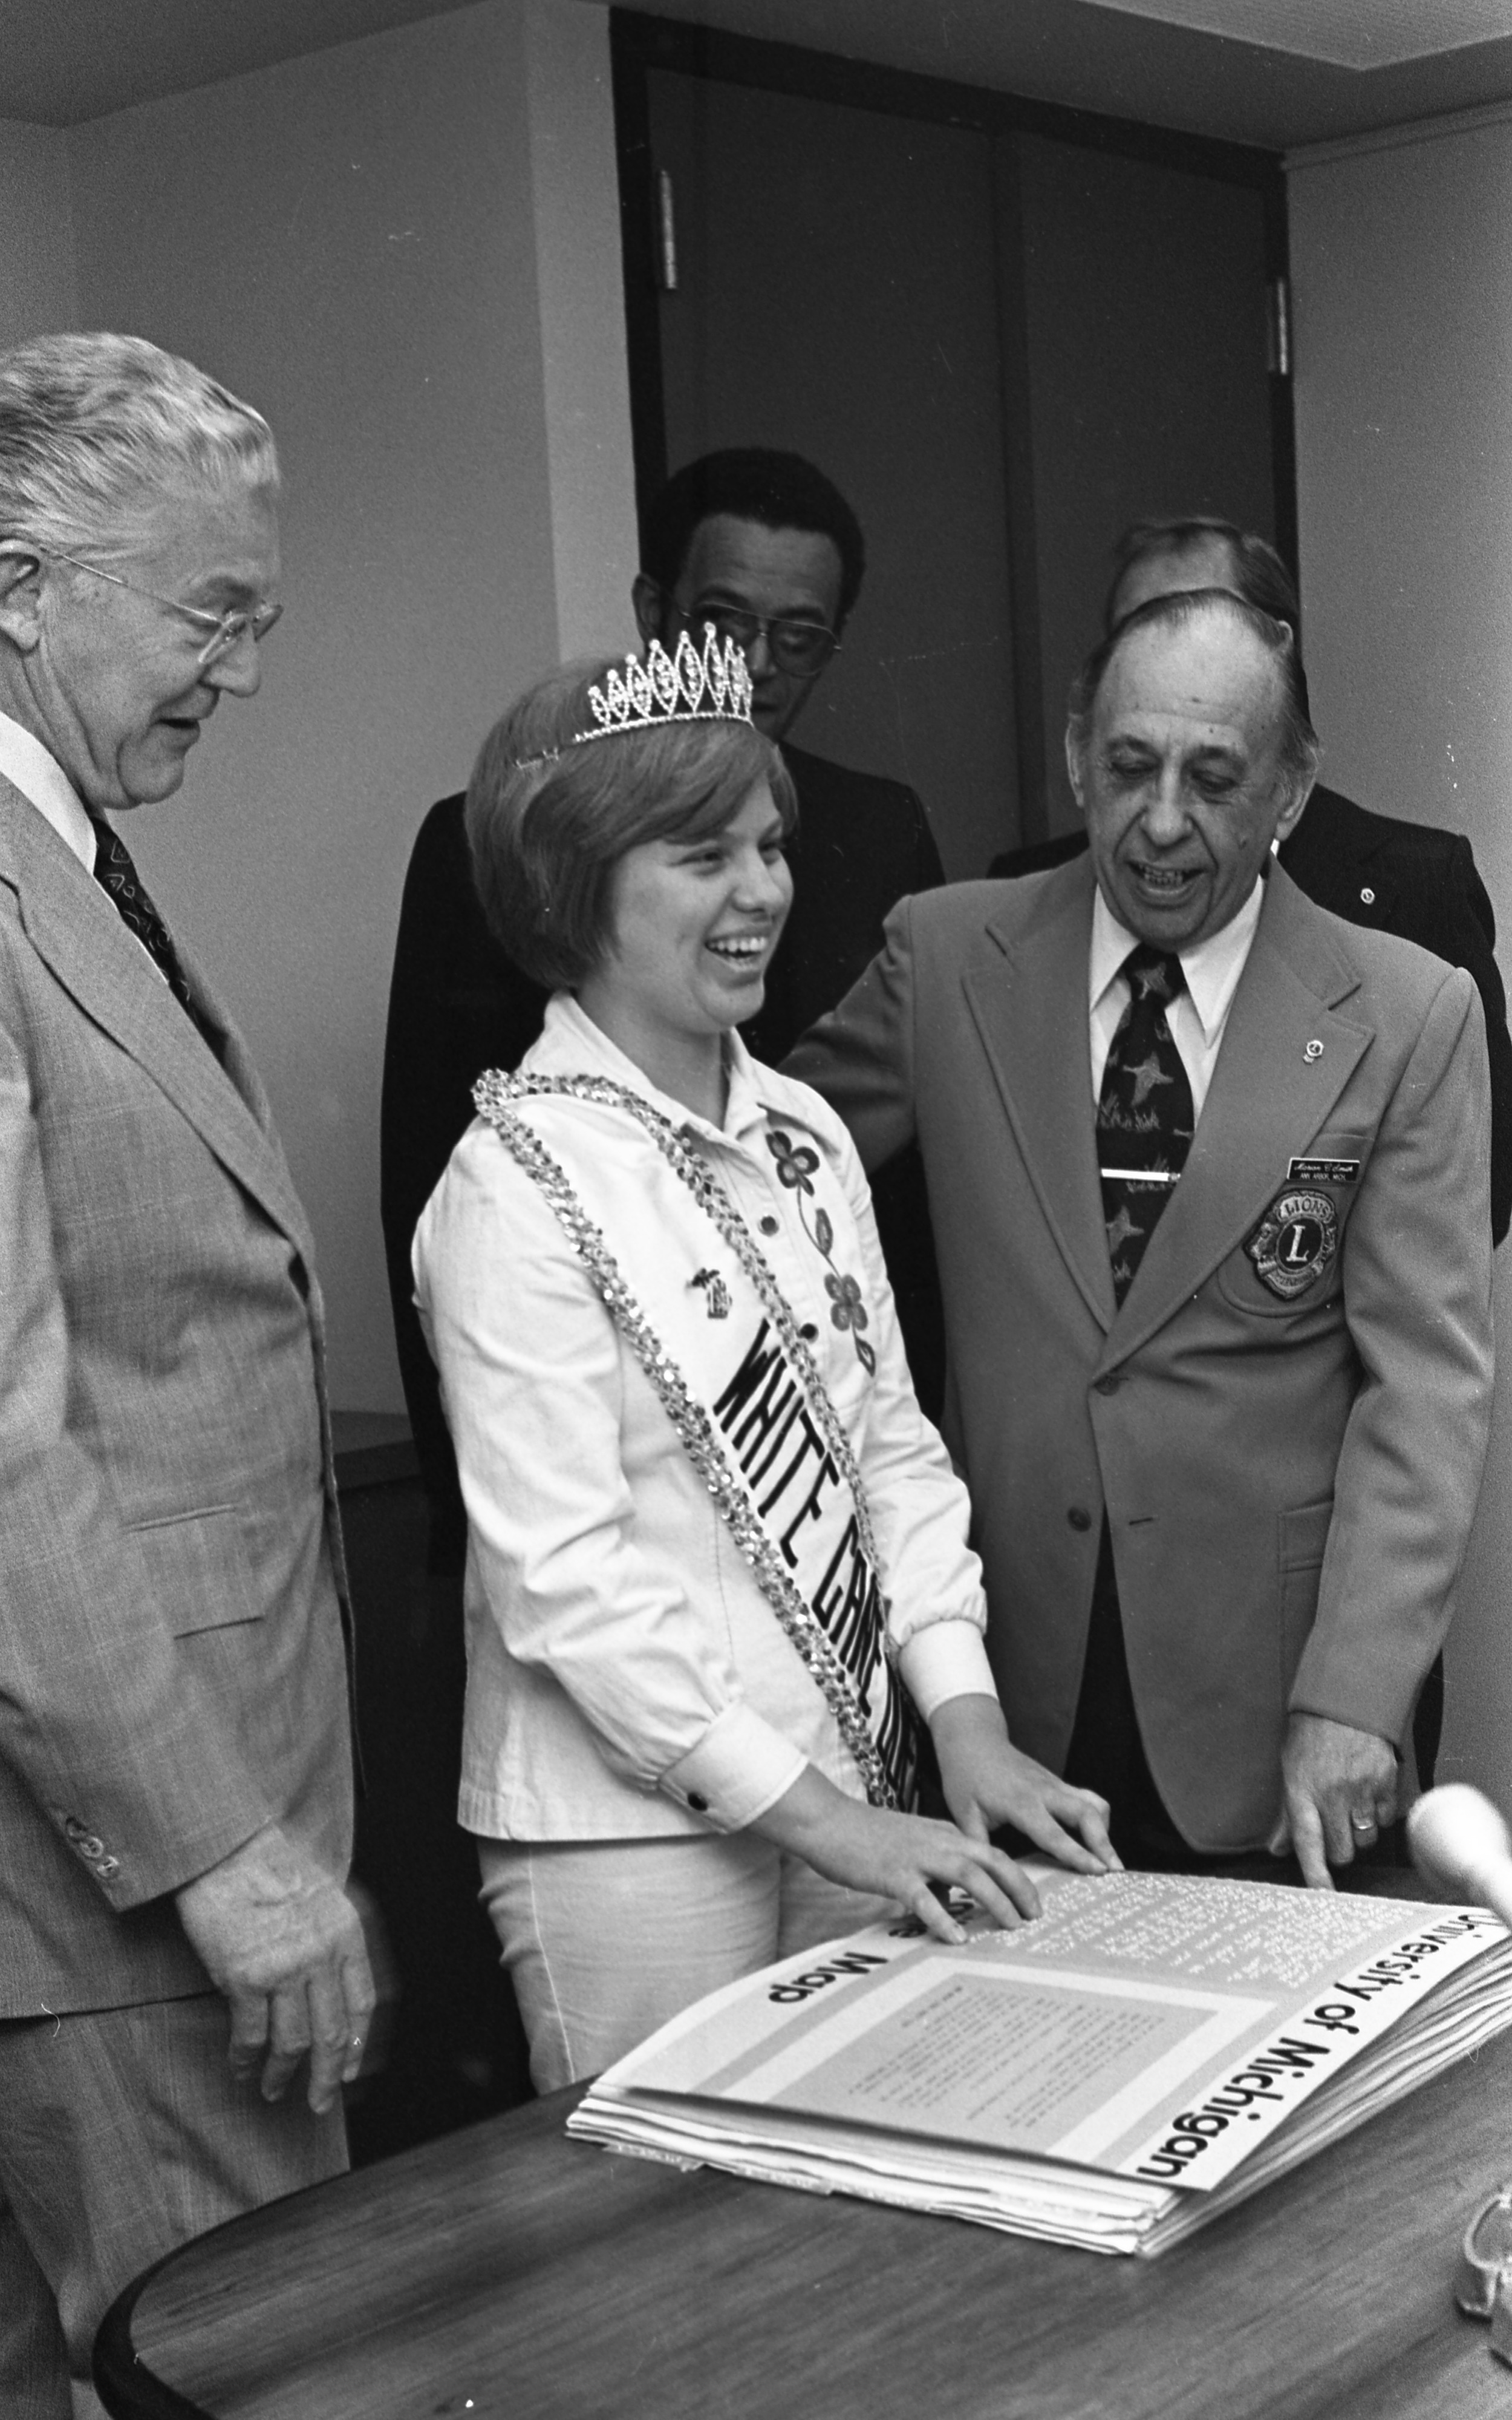 Braille Campus Maps Are Presented To University Of Michigan President Robben Fleming By Marion Smith, Ann Arbor Lions Club, & Christine Smith, Michigan Lions White Cane Queen, April 1977 image